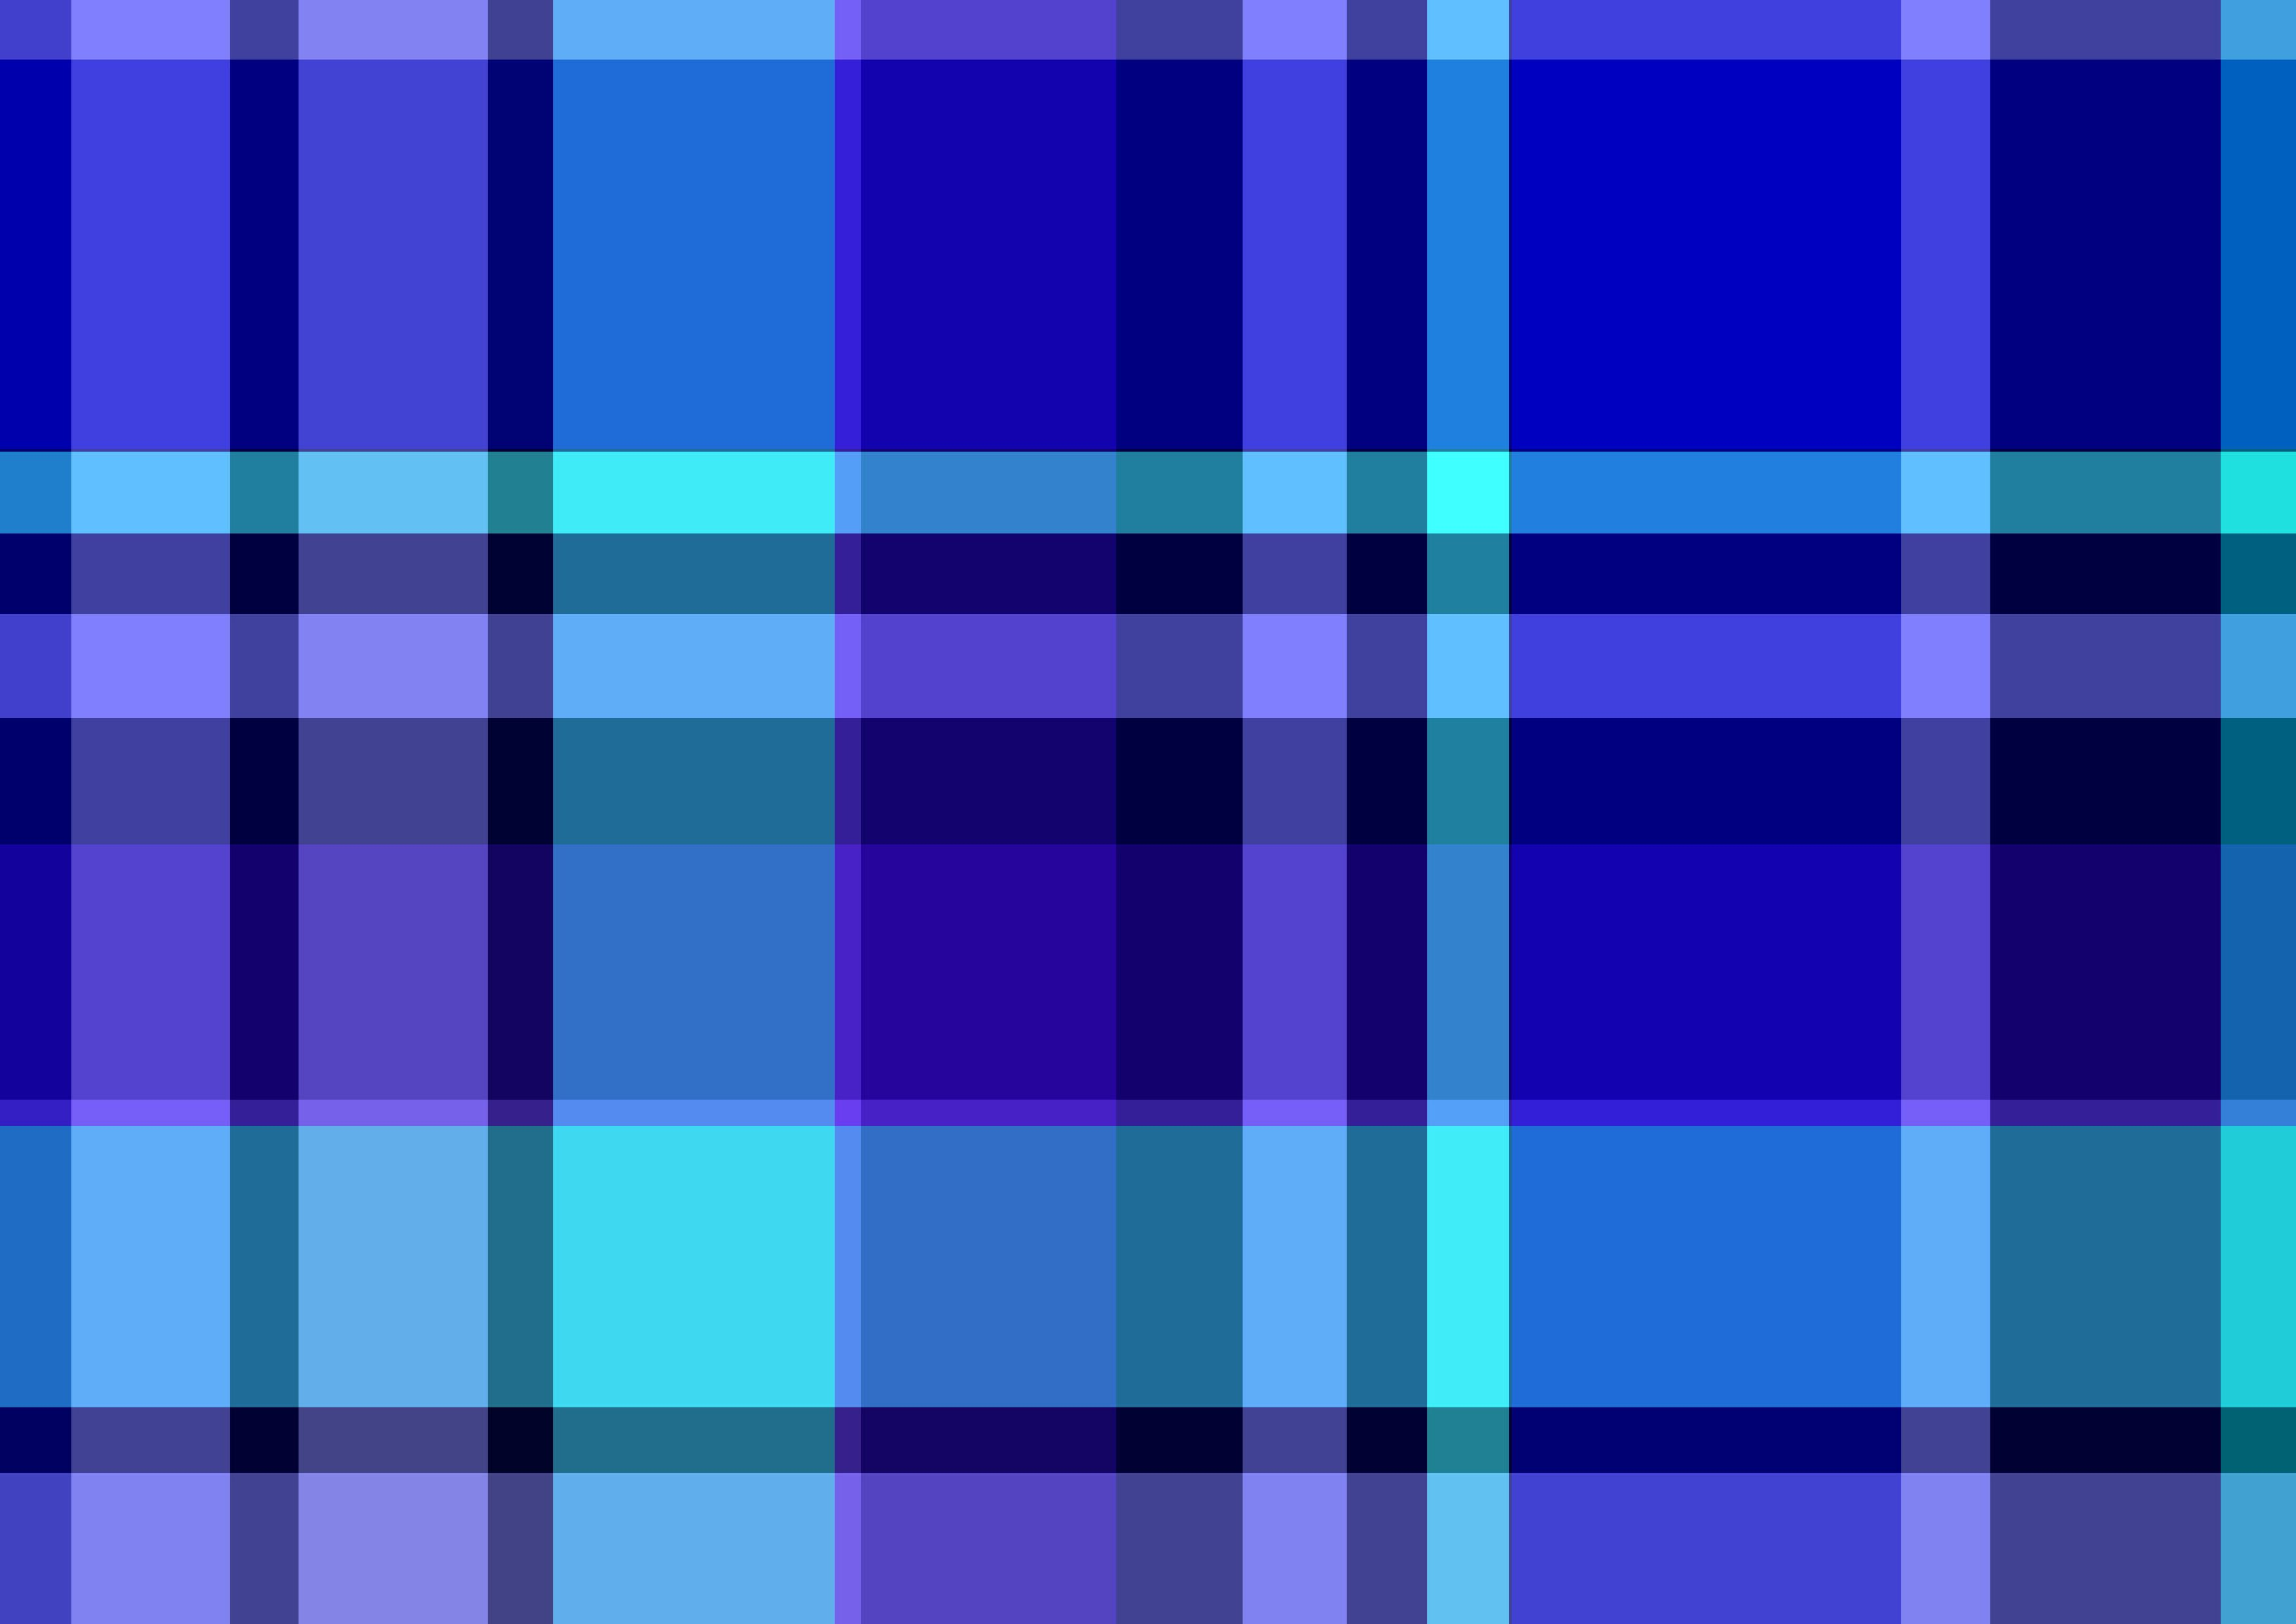 blue and green plaid wallpaper